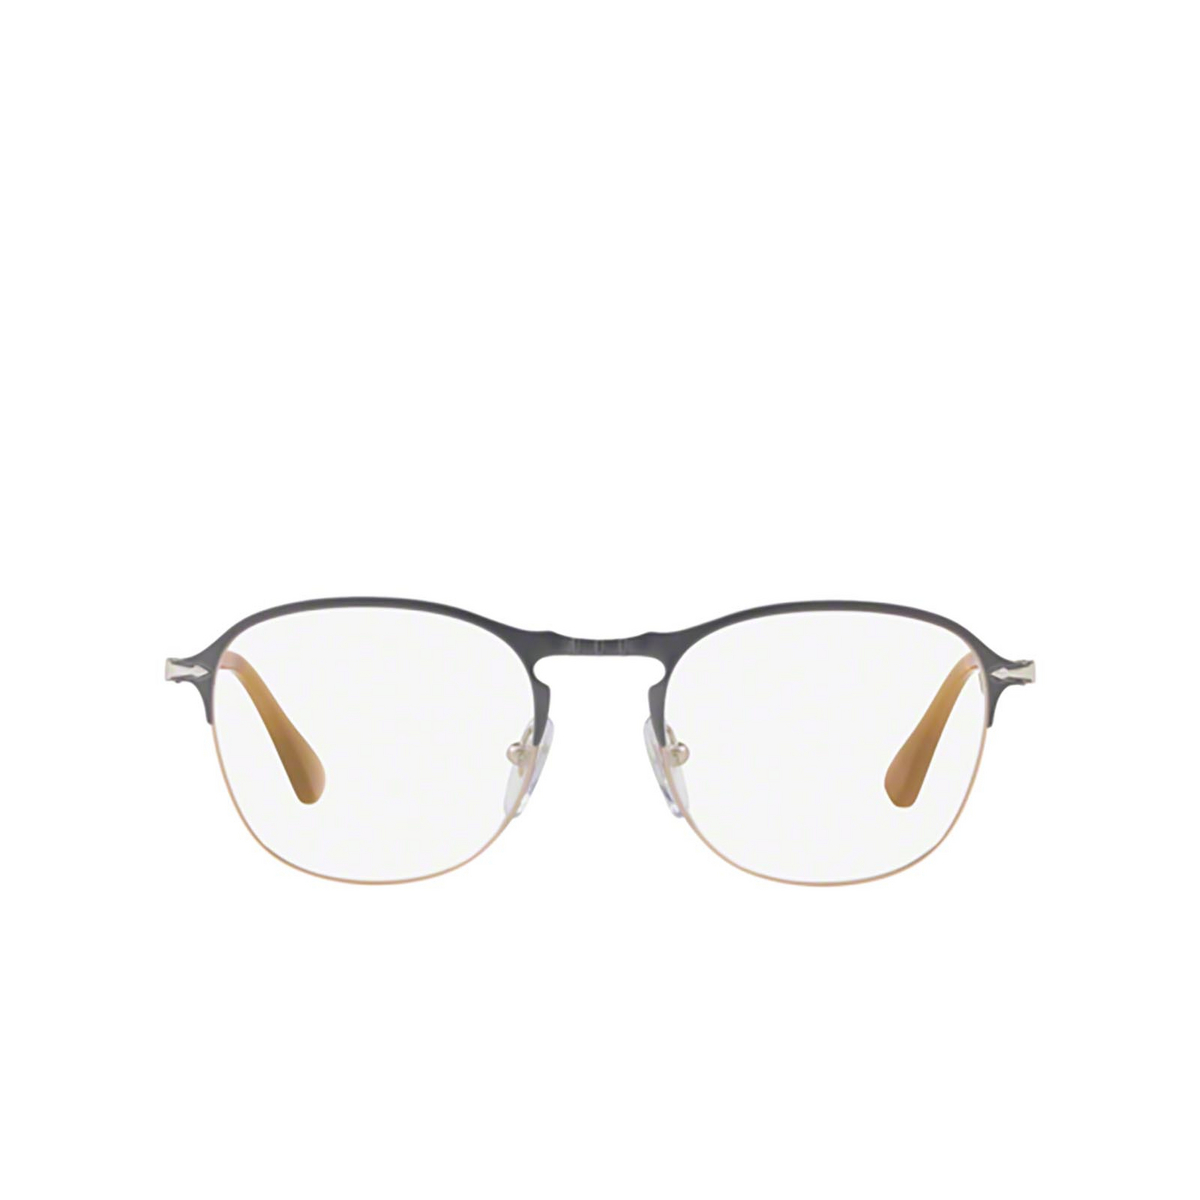 Persol® Square Eyeglasses: PO7007V color Grey / Light Brown 1071 - front view.